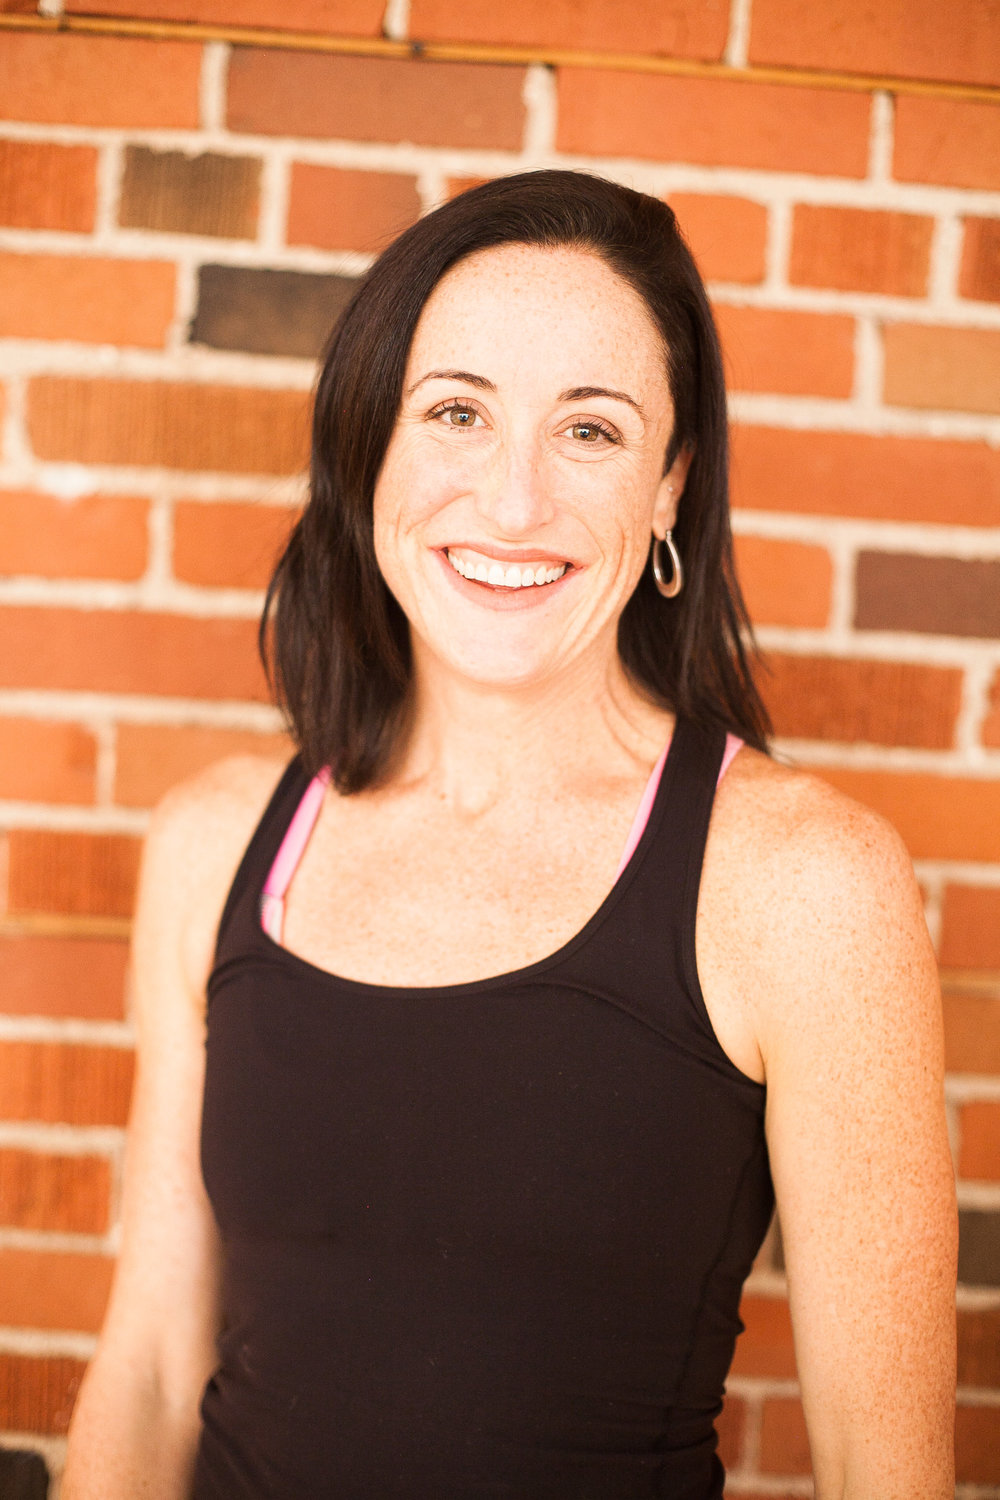 Barb lives to move! After many years working at the hospital as a respiratory therapist she decided that fitness was her true passion and made the career switch.  Come see how Barb can inspire you in her GETnFit and Group Circuit Training classes at YOGAthletix.